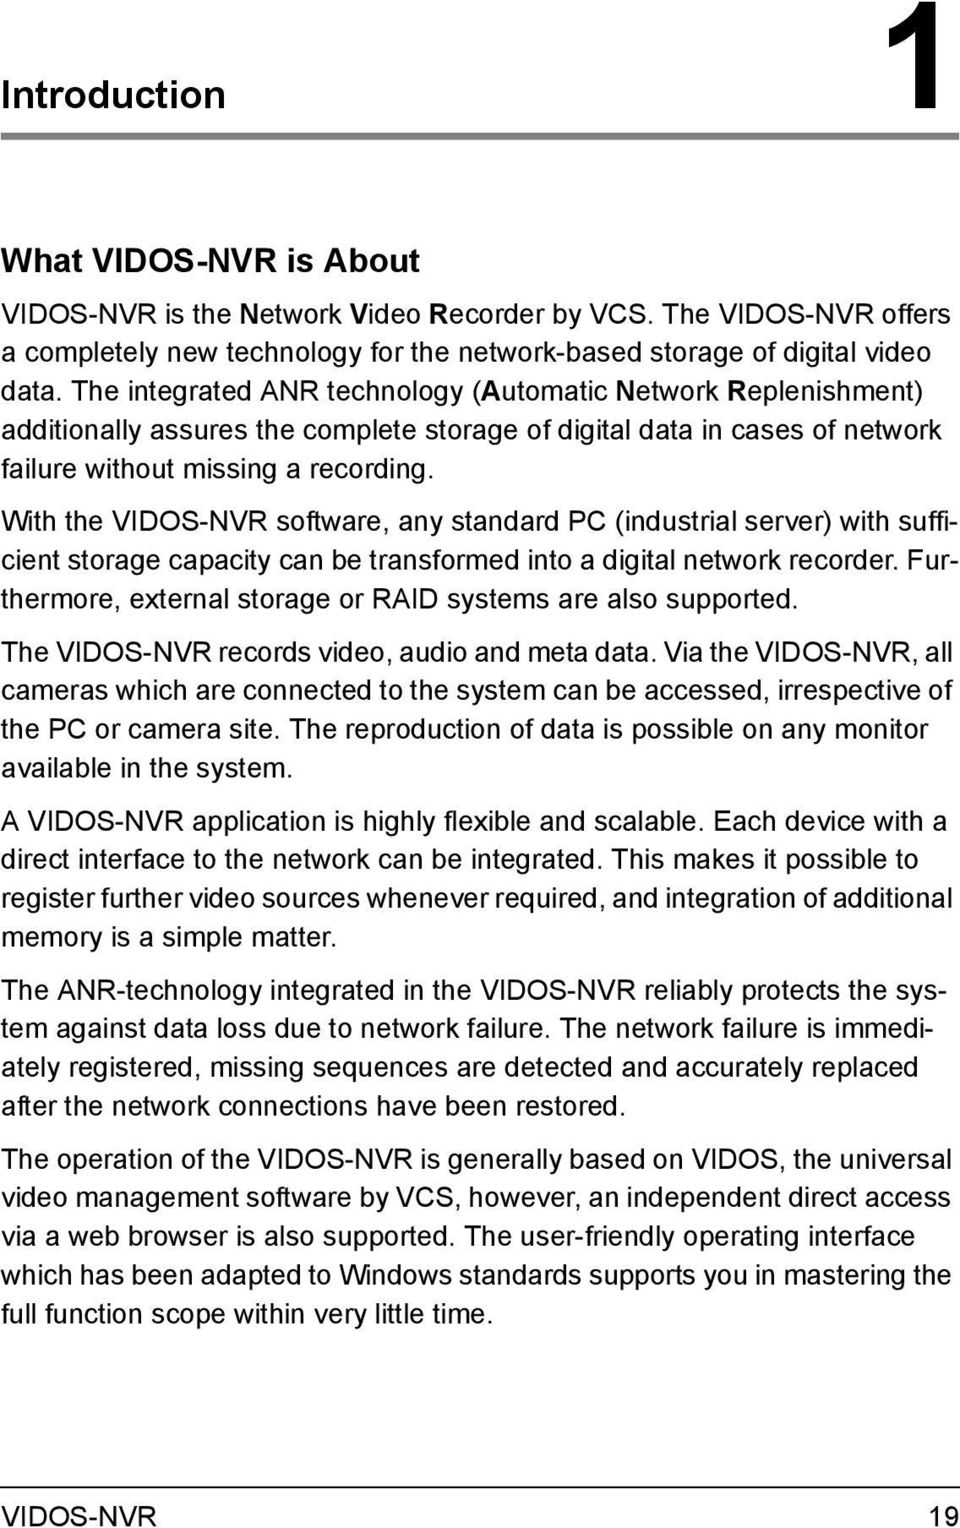 With the VIDOS-NVR software, any standard PC (industrial server) with sufficient storage capacity can be transformed into a digital network recorder.